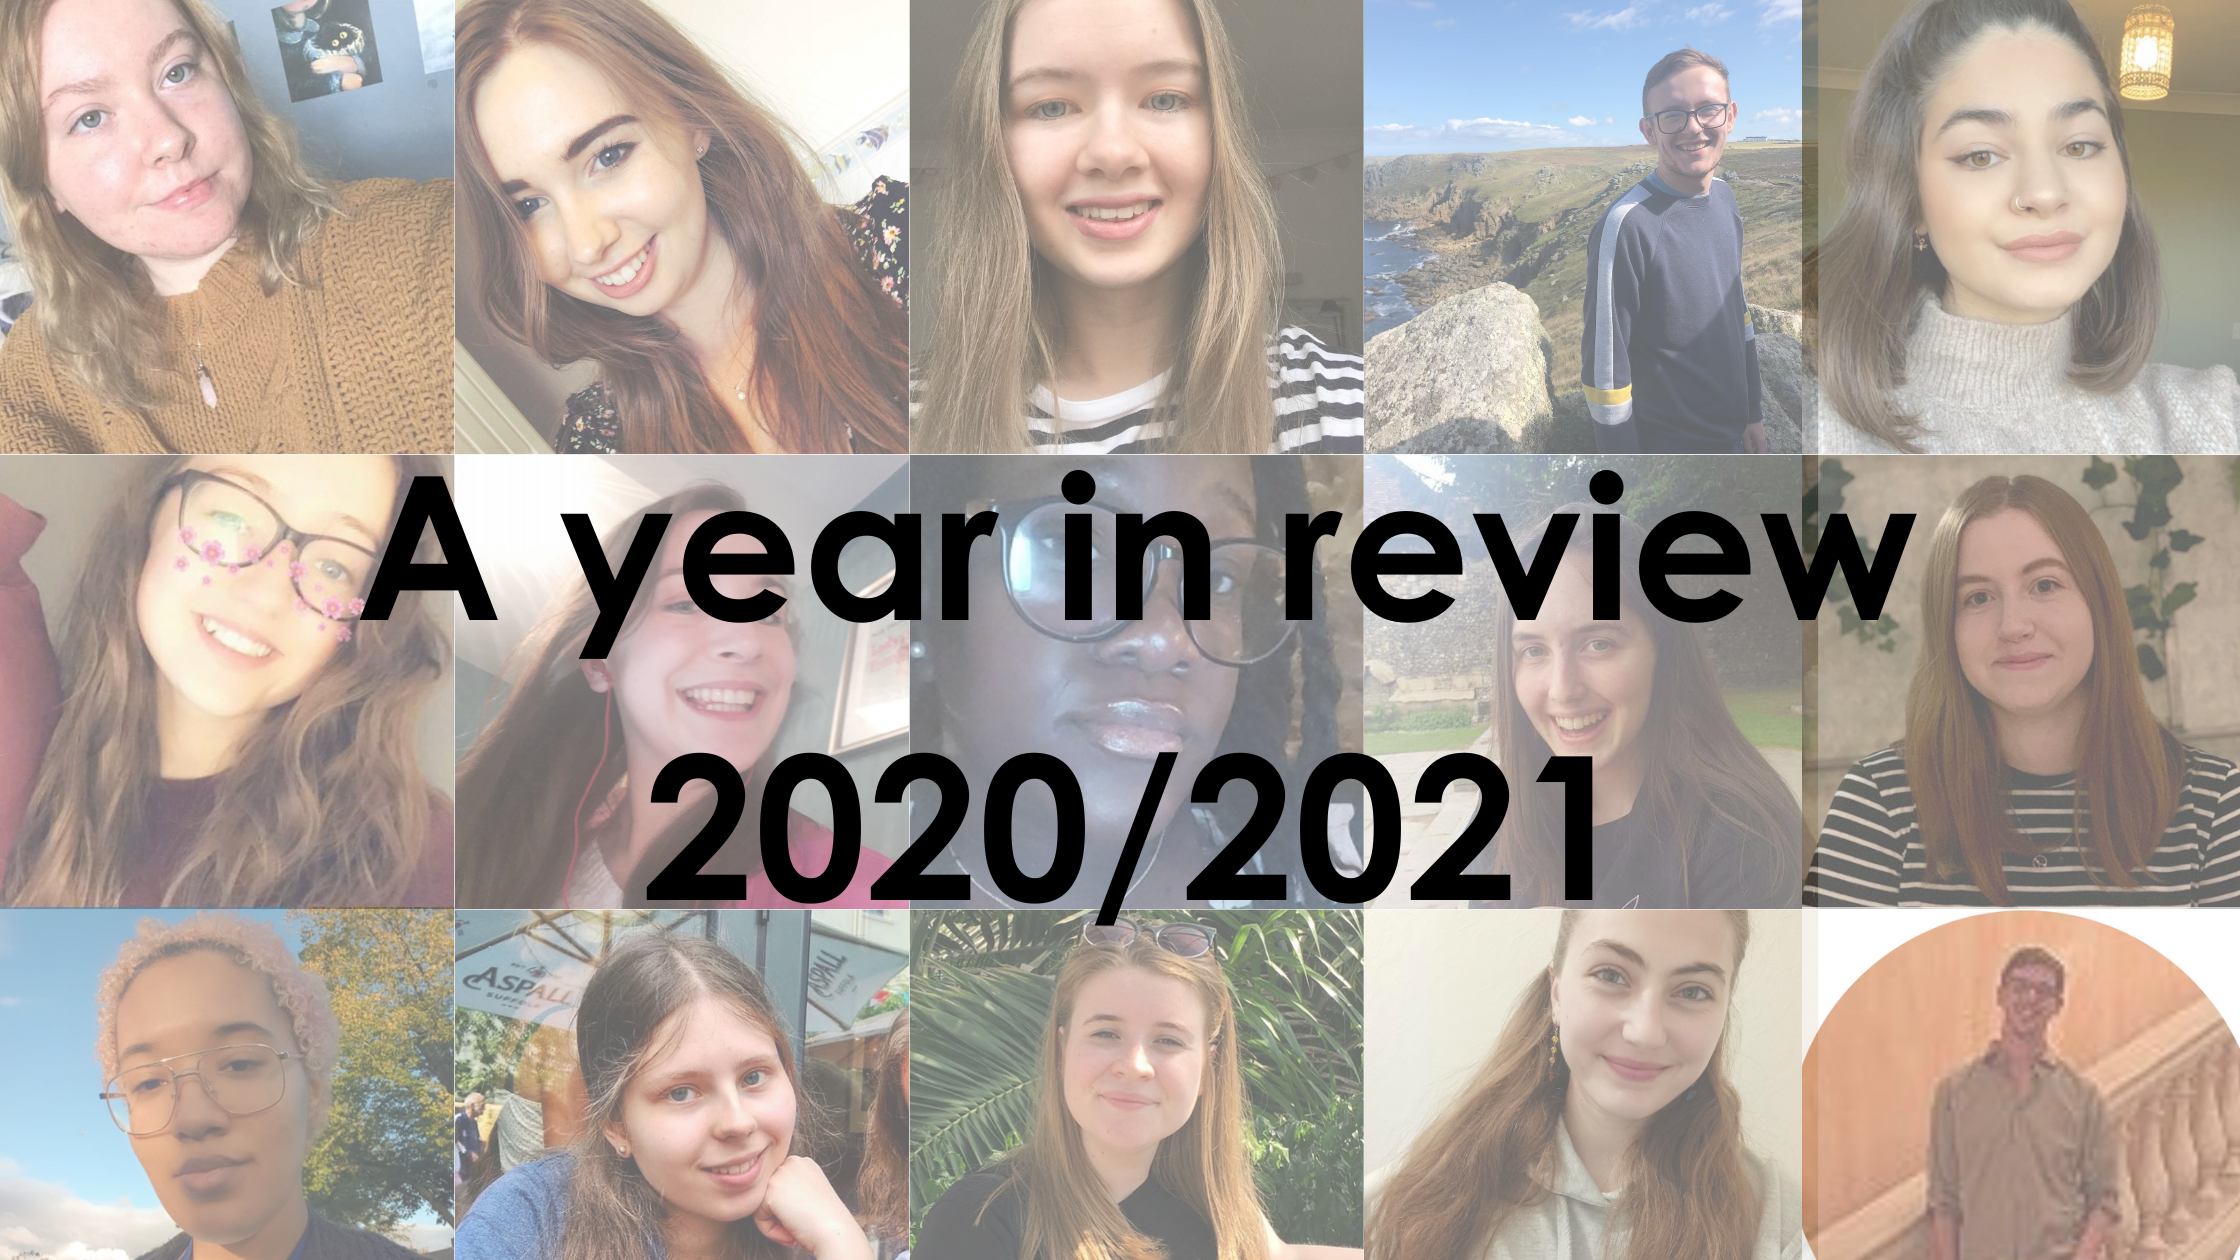 What we have accomplished together: A year in review